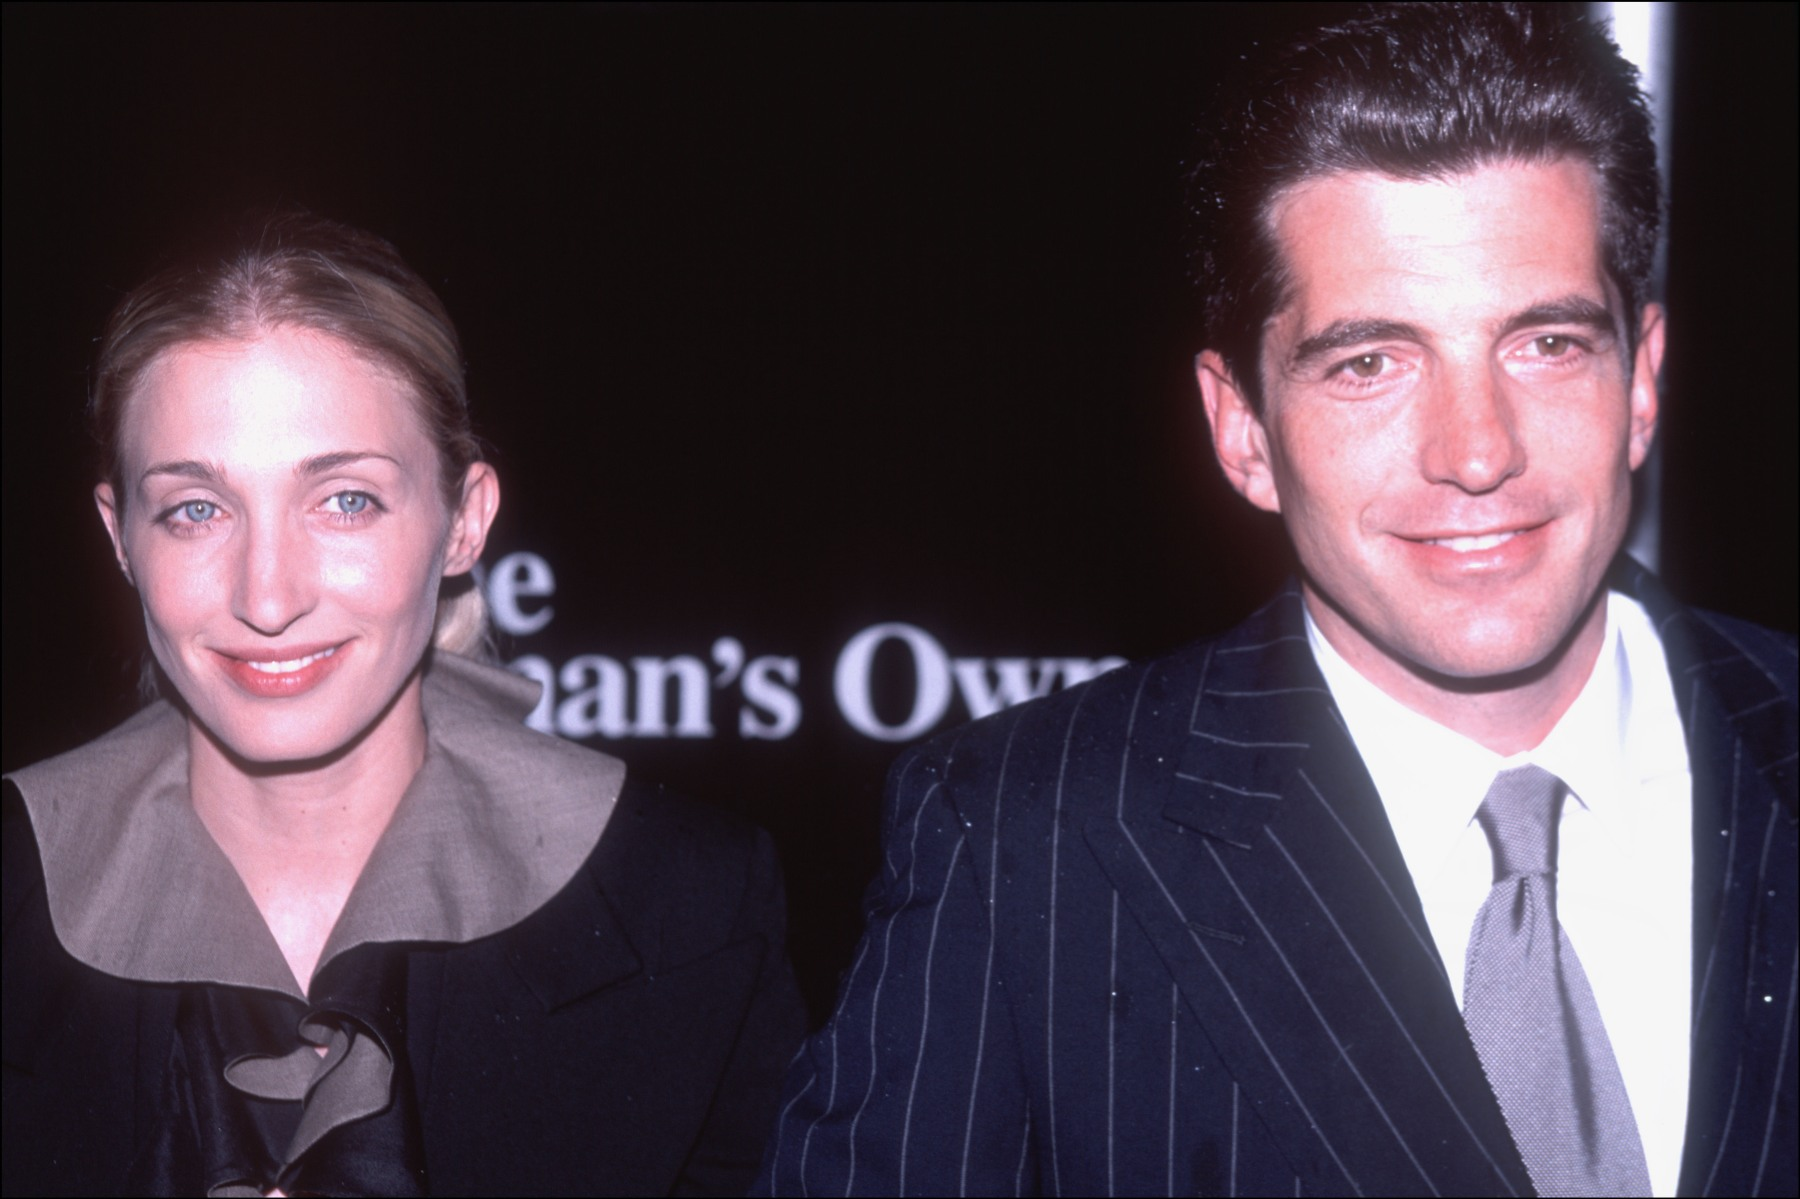 John F Kennedy Jr and his wife Carolyn Bessette Kennedy at their last public appearance. (Photo by Allan Tannenbaum/Getty Images)